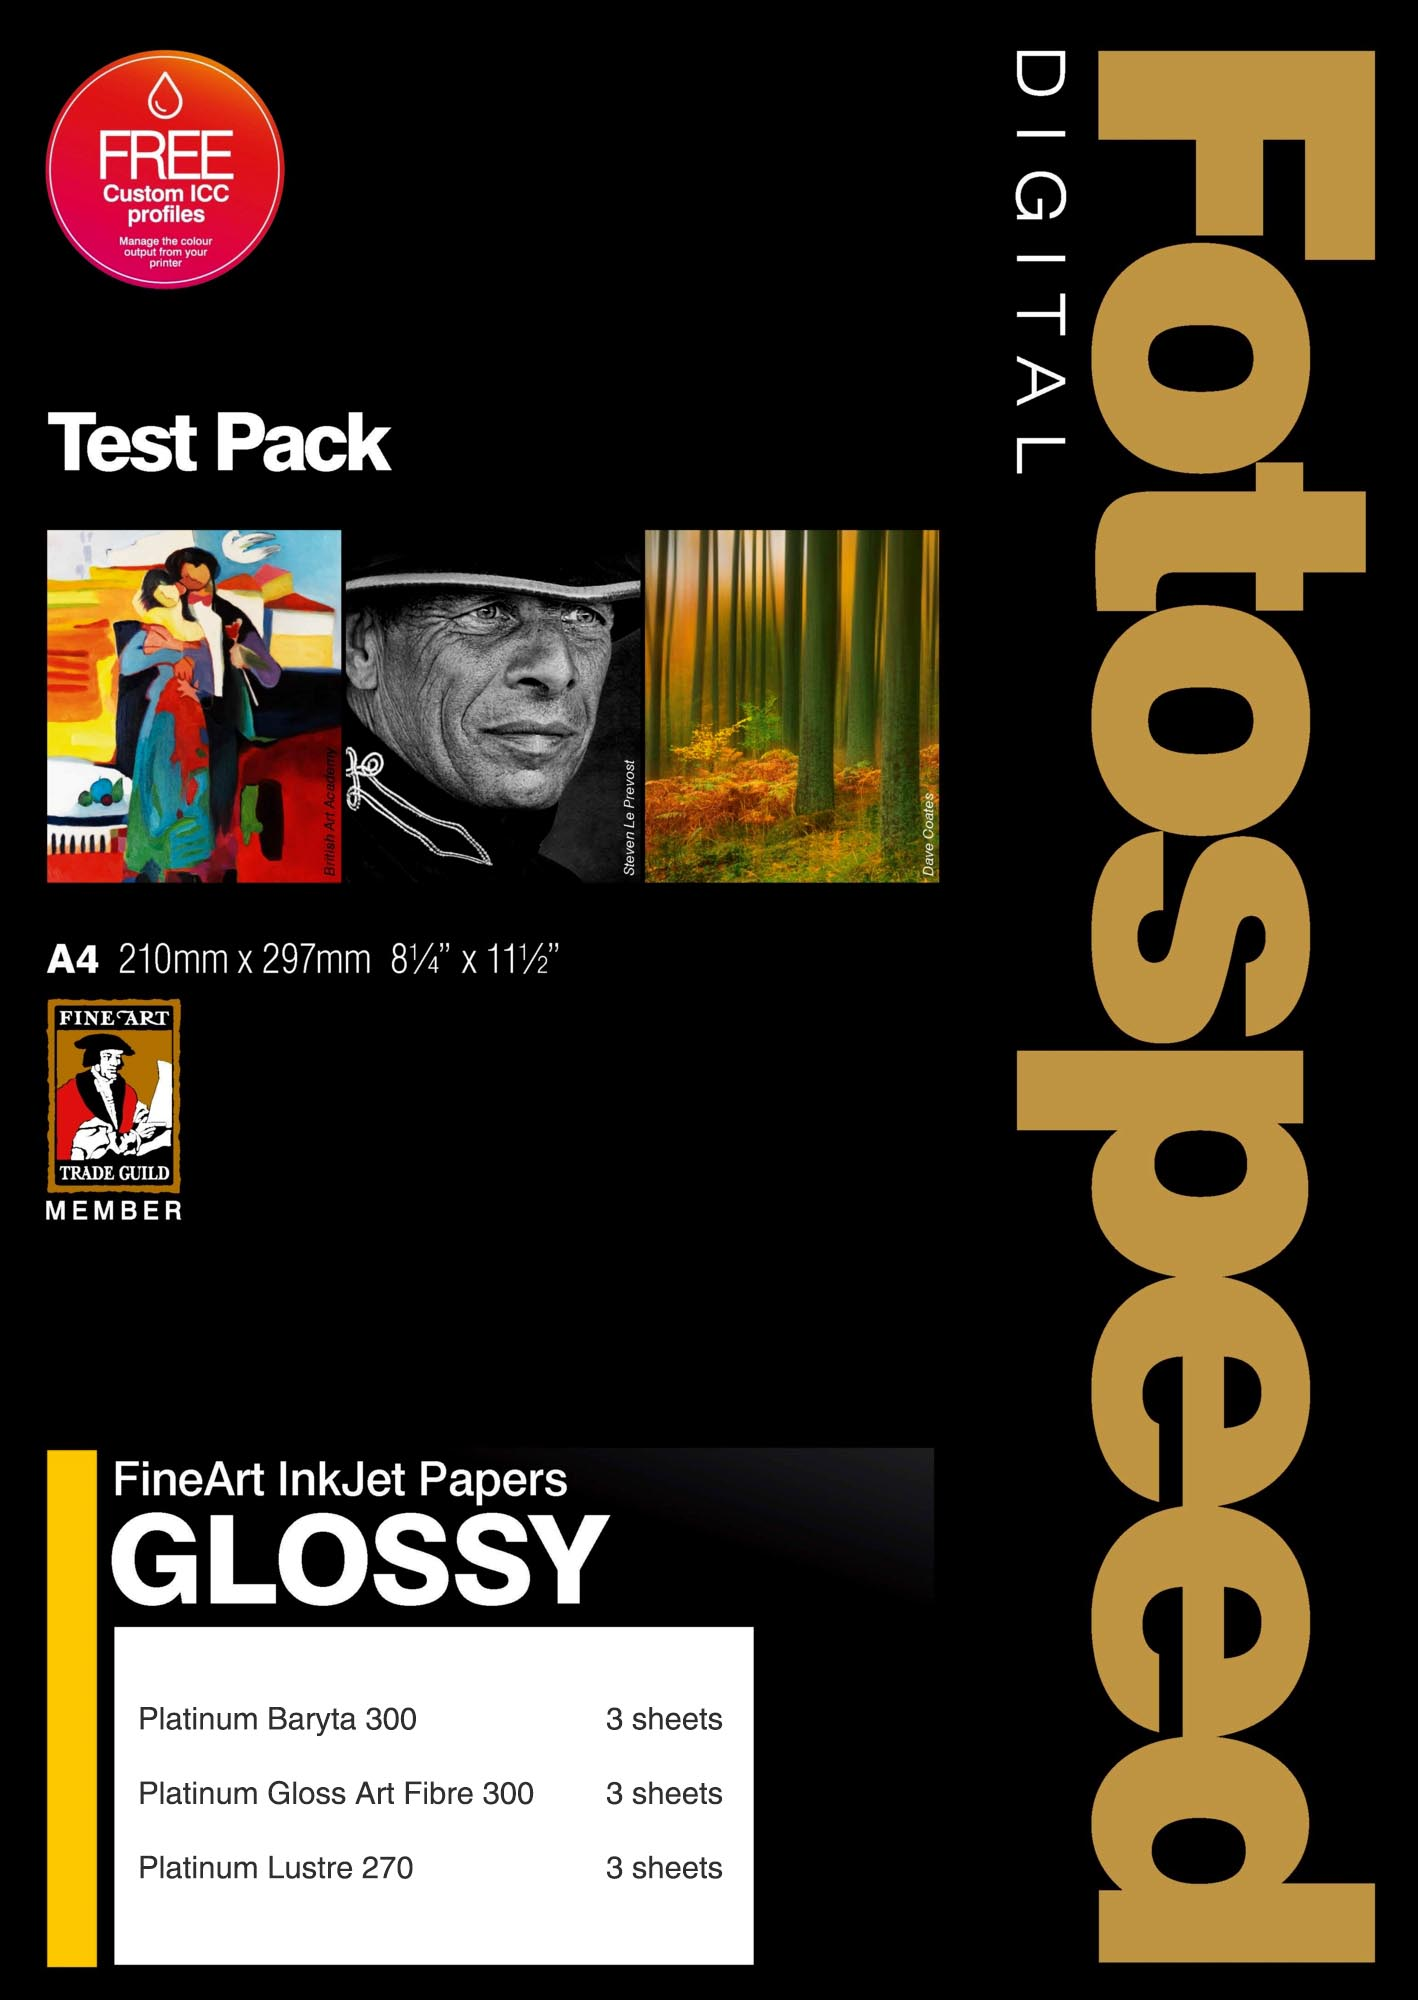 Fotospeed Digital Fine Art Inkjet Paper GLOSSY Test Pack - 9 Sheets A4